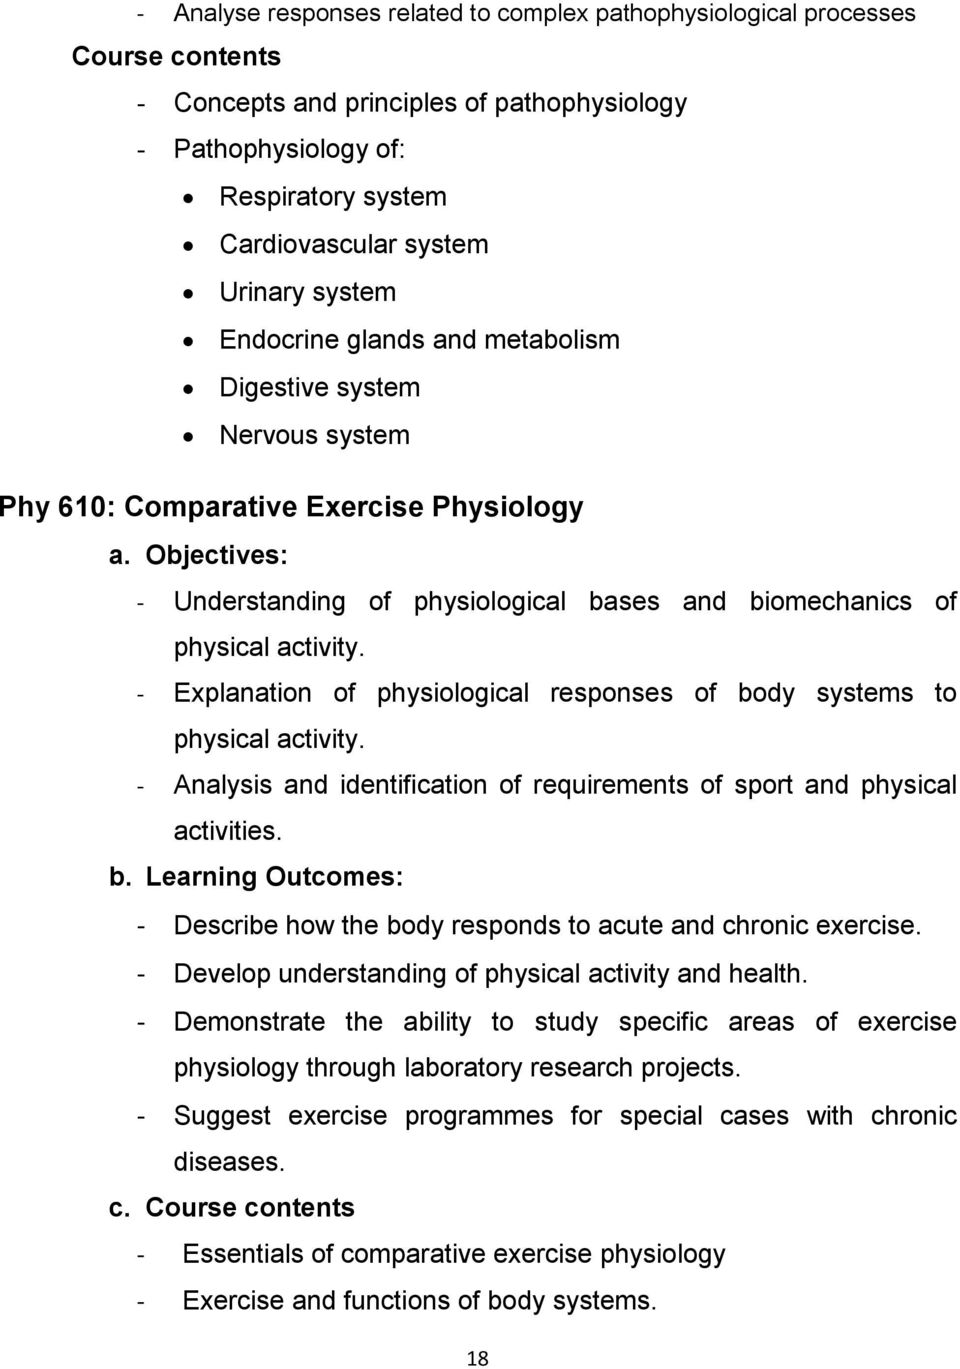 - Explanation of physiological responses of body systems to physical activity. - Analysis and identification of requirements of sport and physical activities. b. Learning Outcomes: - Describe how the body responds to acute and chronic exercise.